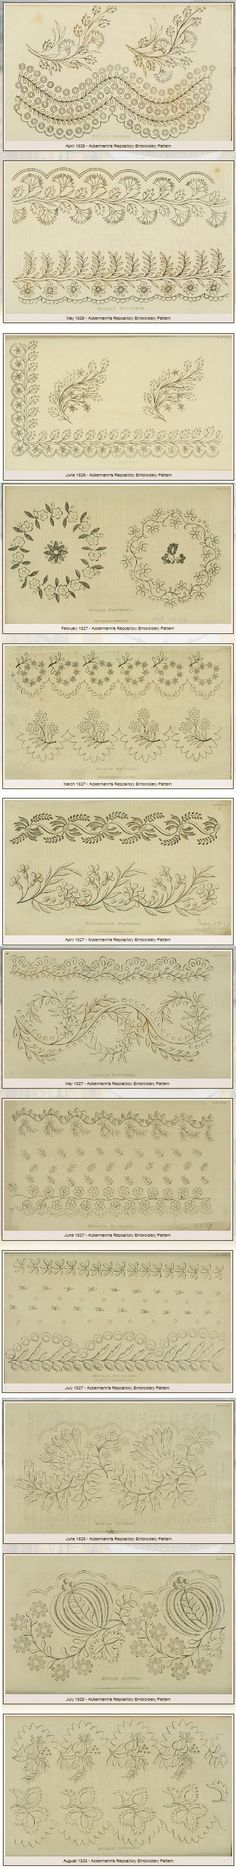 "39 beautiful free printable Needlework Patterns (from Ackermann's Repository 1826 - 1828) shared by Evelyn Kennedy Duncan. PLEASE NOTE: for full resolution printing follow the ""Download instructions"" in her sidebar. http://www.ekduncan.com/2011/10/regency-era-needlework-patterns-from_13.html"